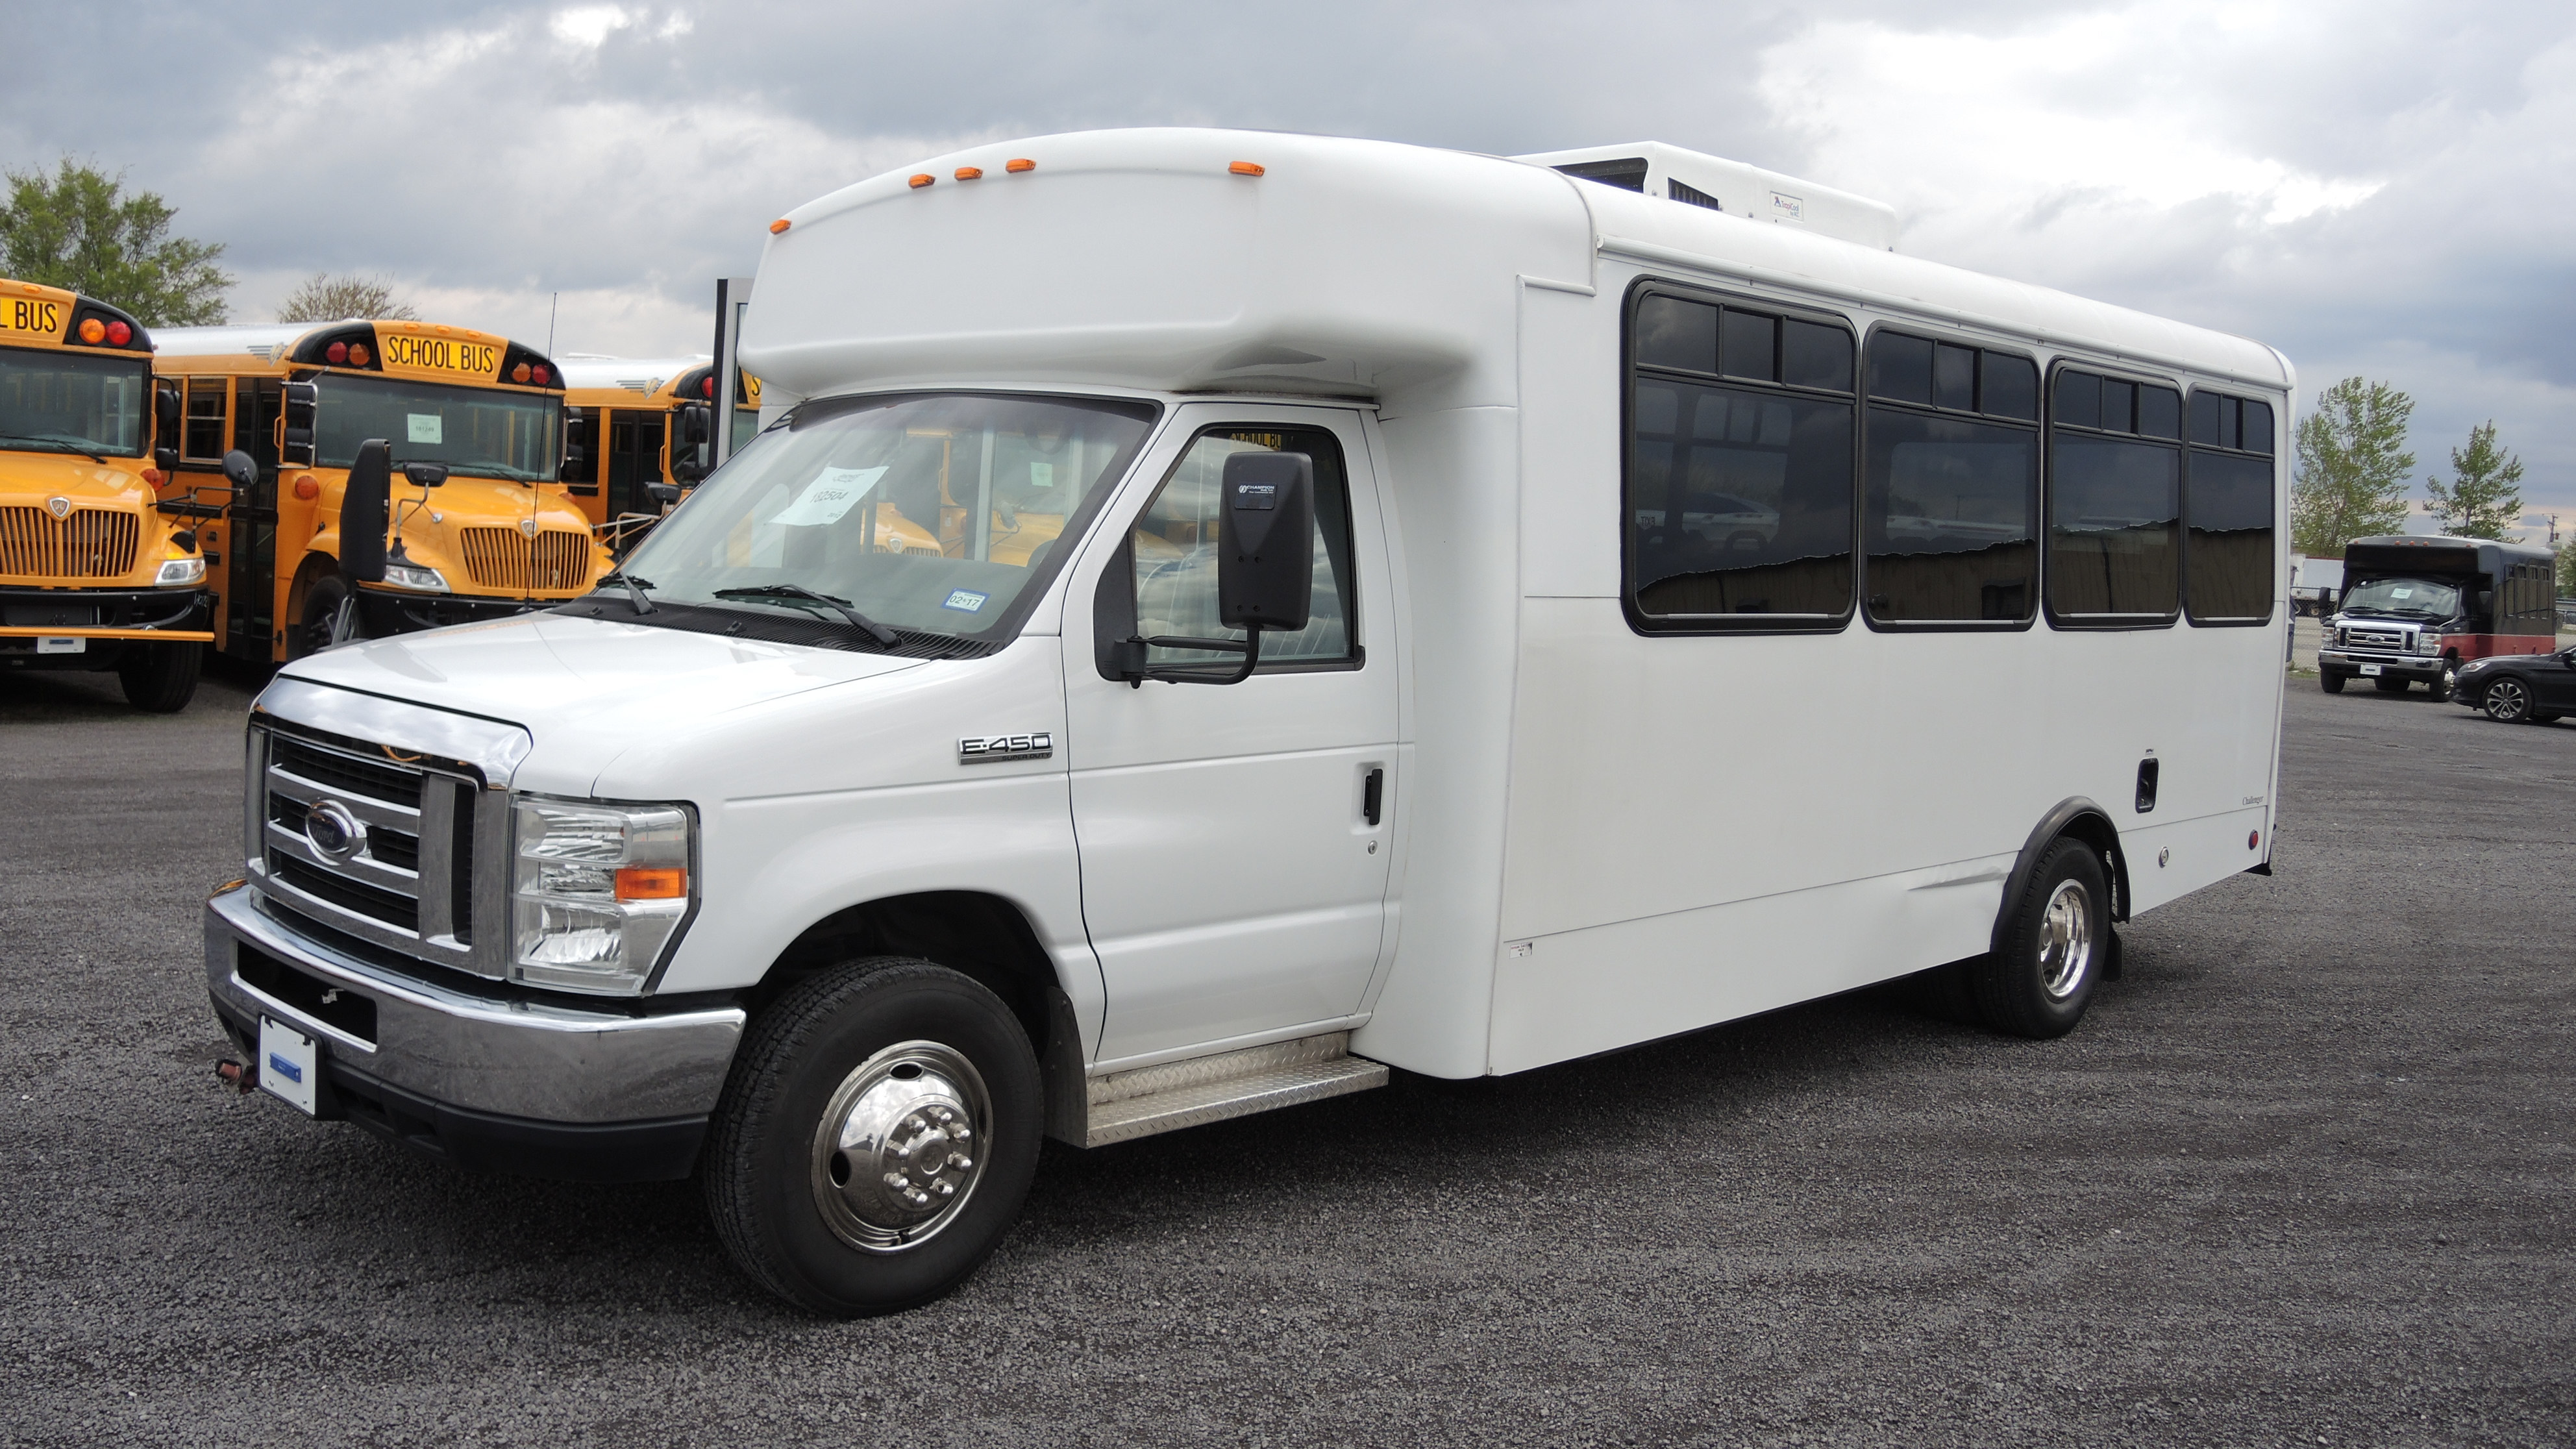 Maine New and Used Buses- Midwest Transit Equipment